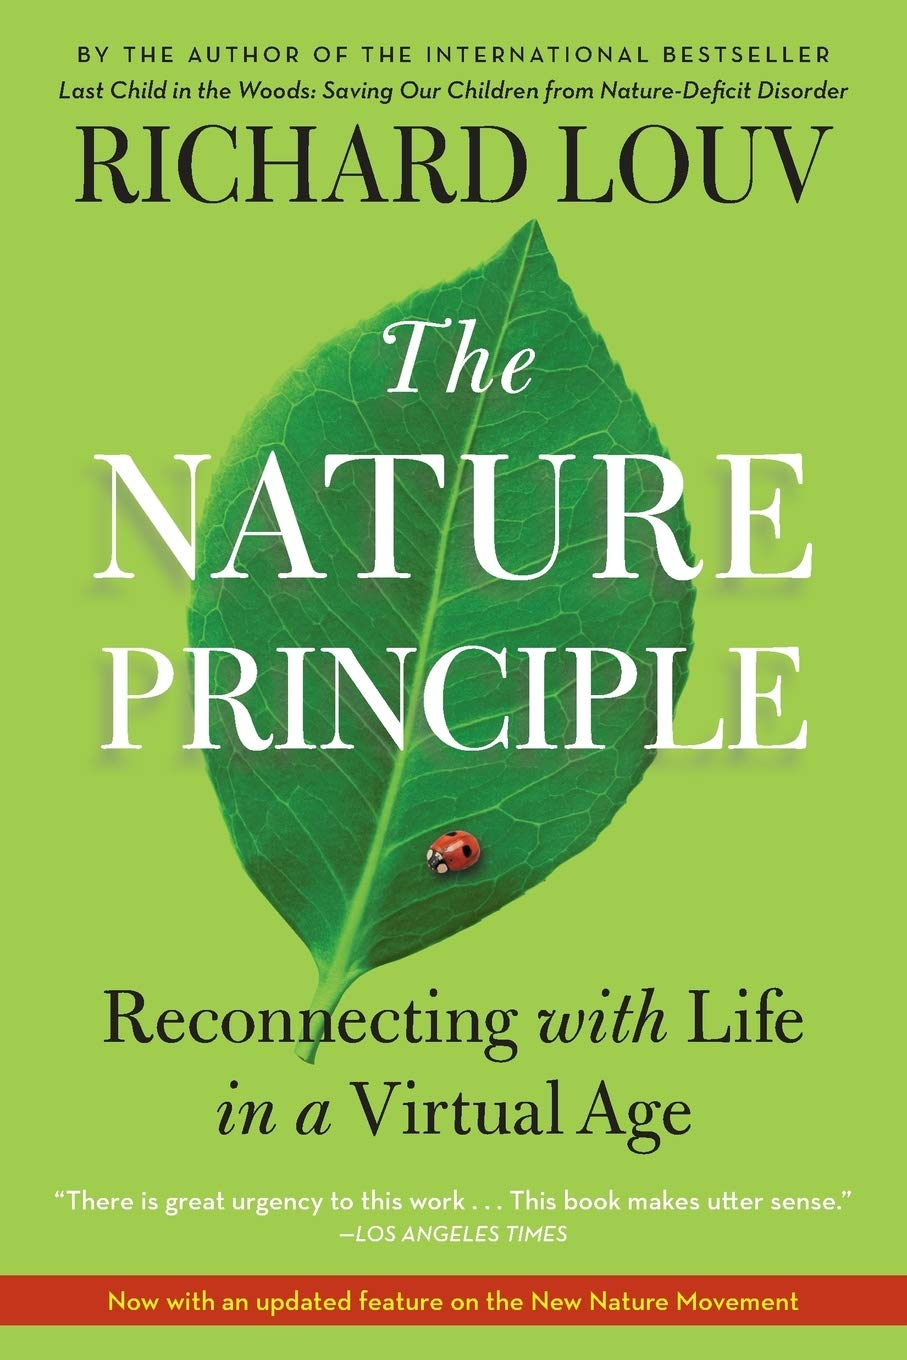 The nature principle : reconnecting with life in a virtual age, Richard Louv